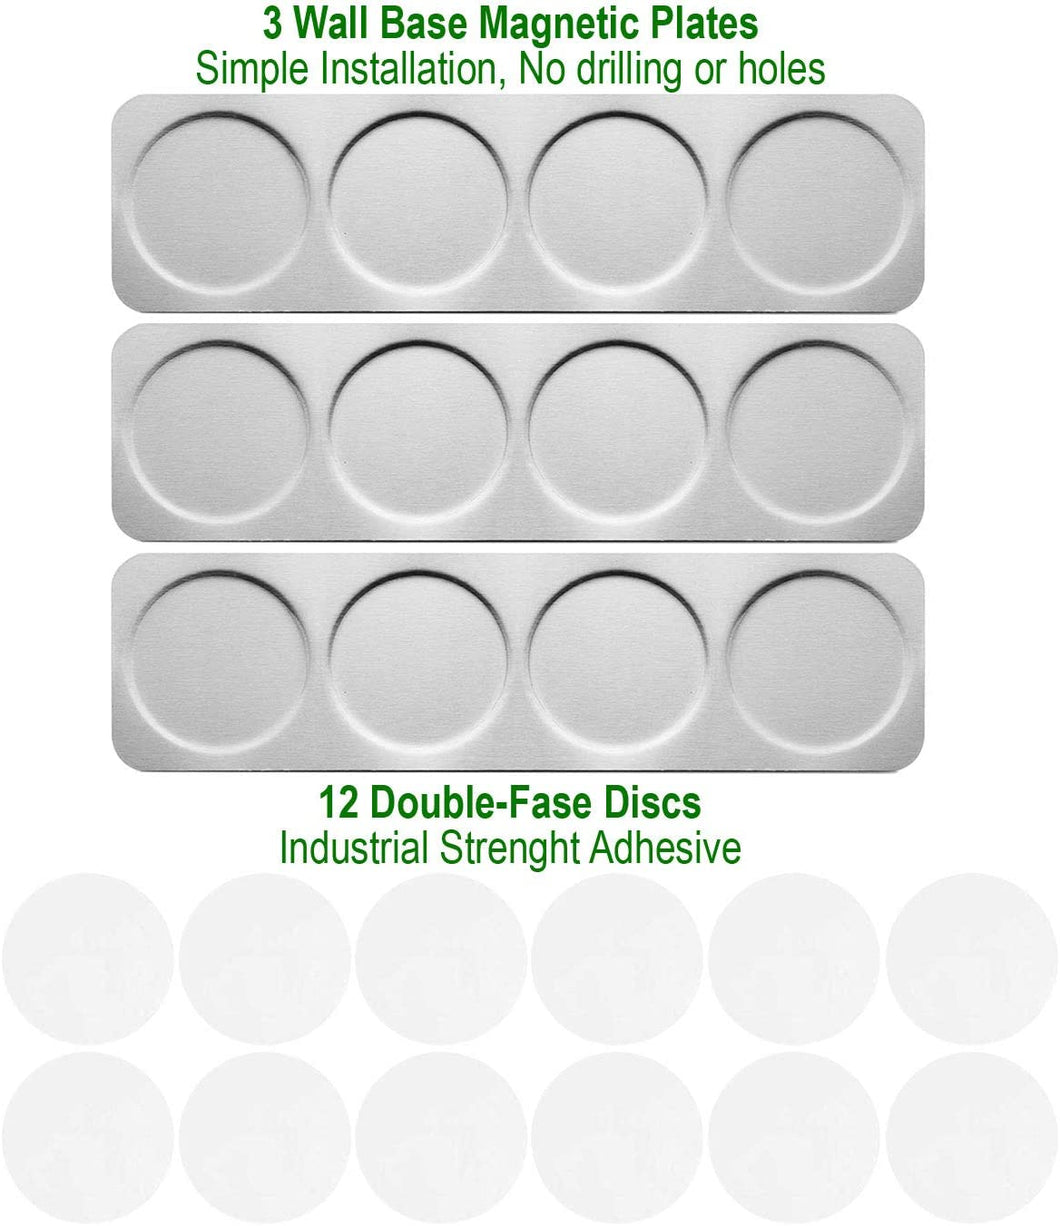 Stainless Steel Plates for Magnetic Spice Tins with Back Adhesives